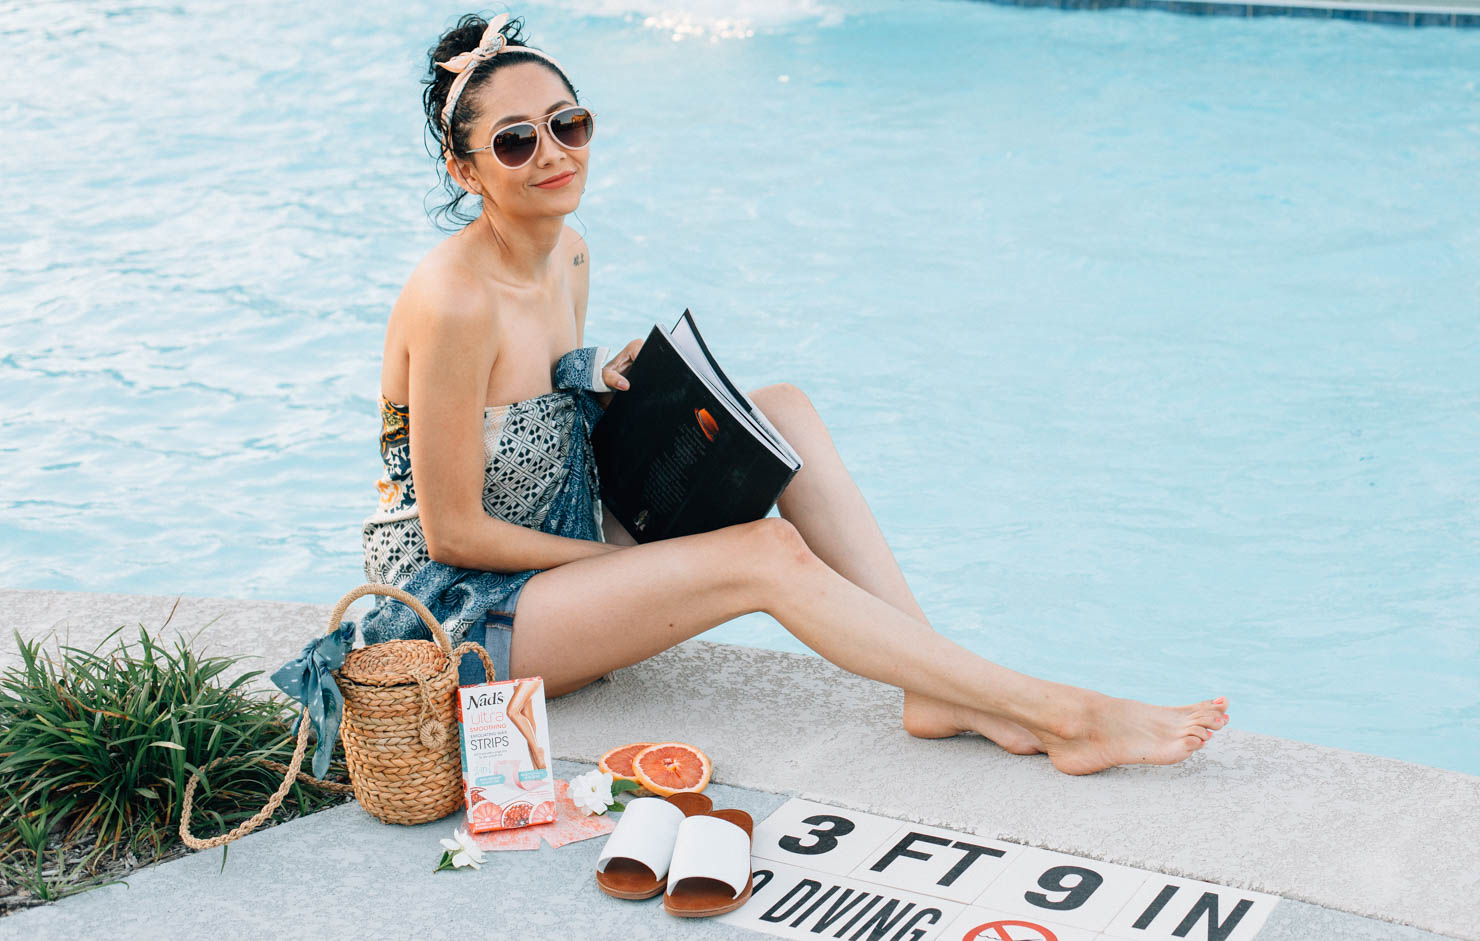 Beauty blogger Lilly Beltran of Daily Craving blog shares her tips for achieving smooth skin for bikini season